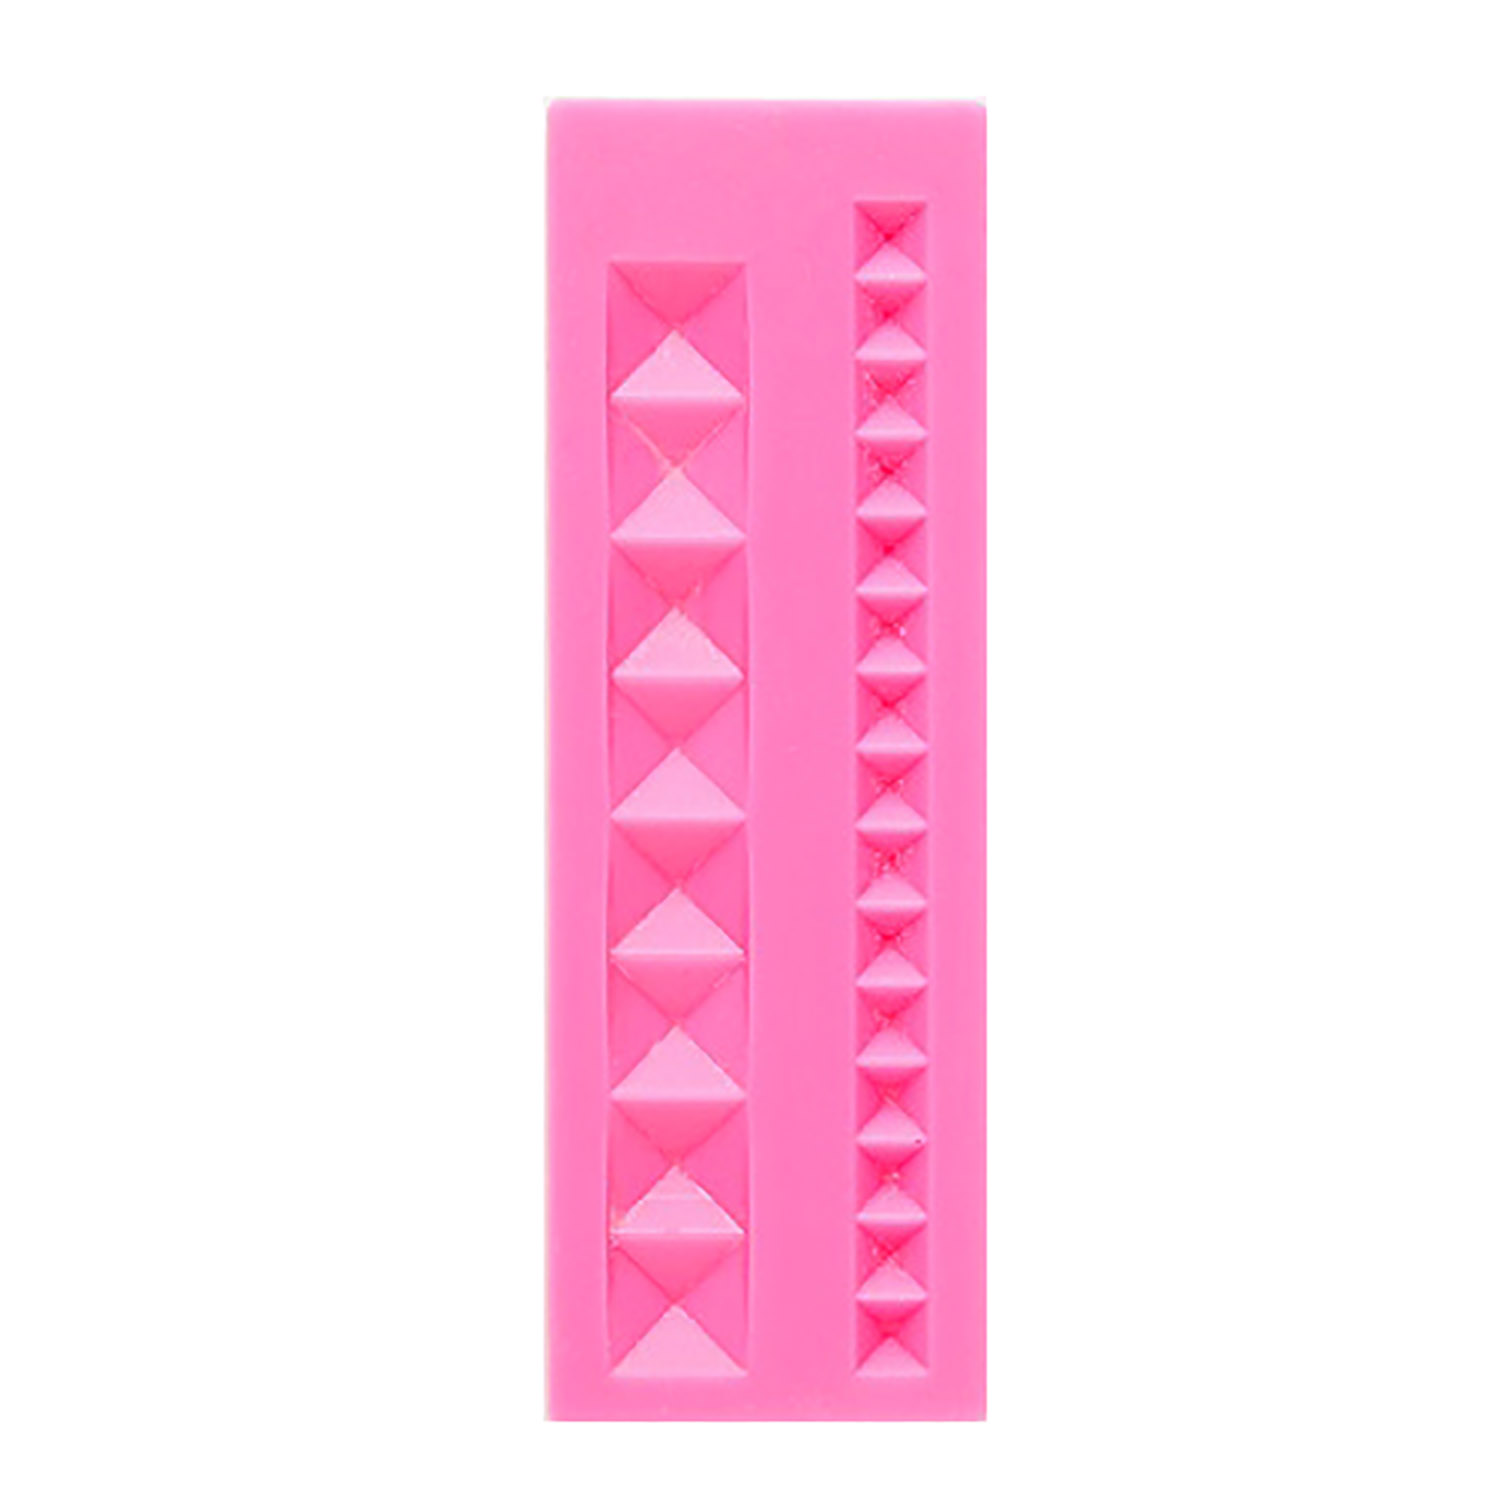 Pyramid Stud Silicone Mold